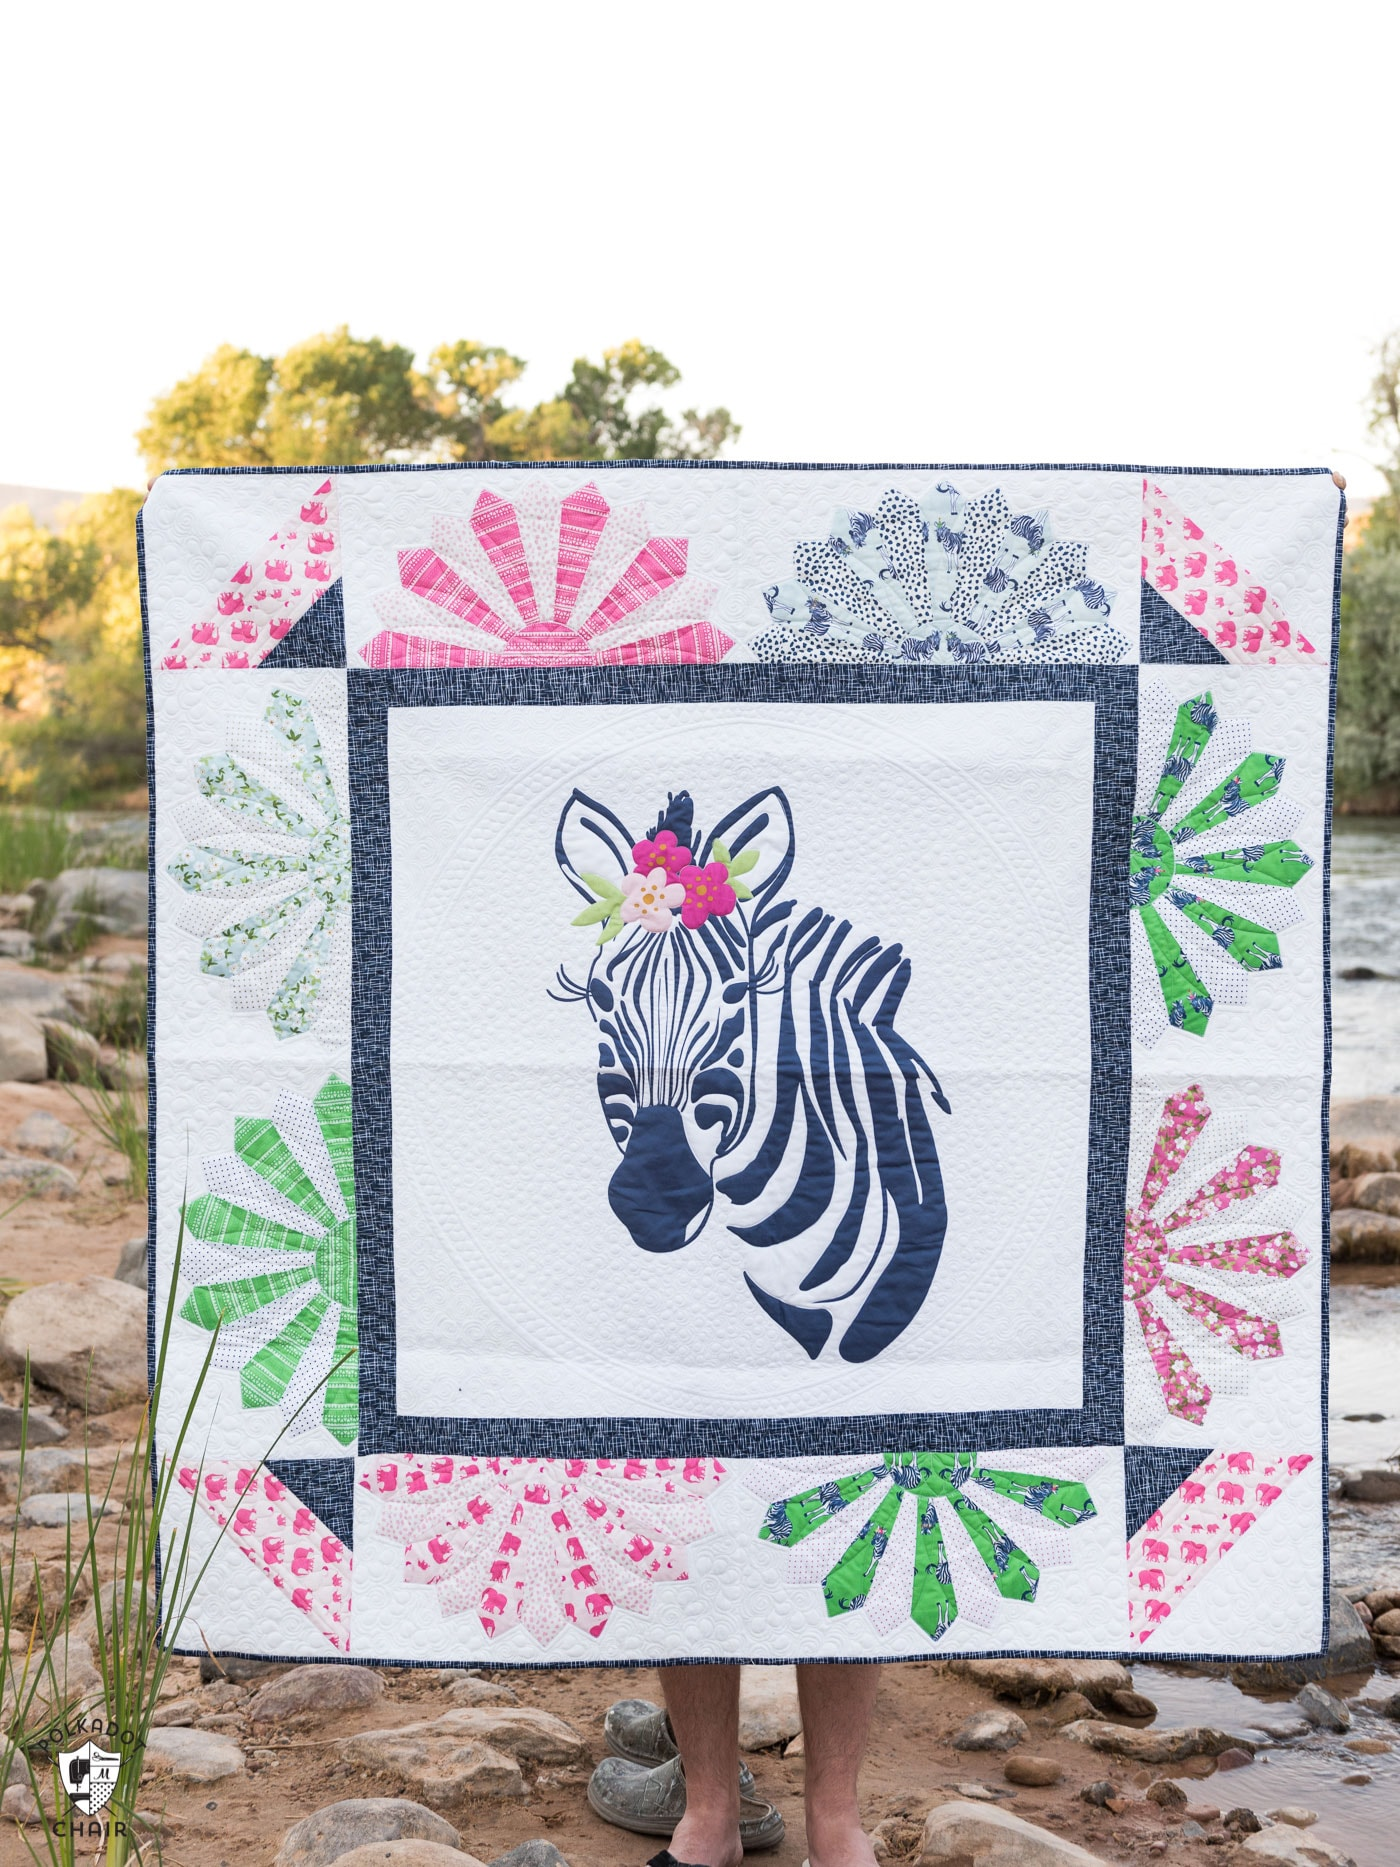 Zinnia the Zebra Quilt Pattern - such a fun applique quilt pattern, would be so cute to make as a baby quilt or for a child!